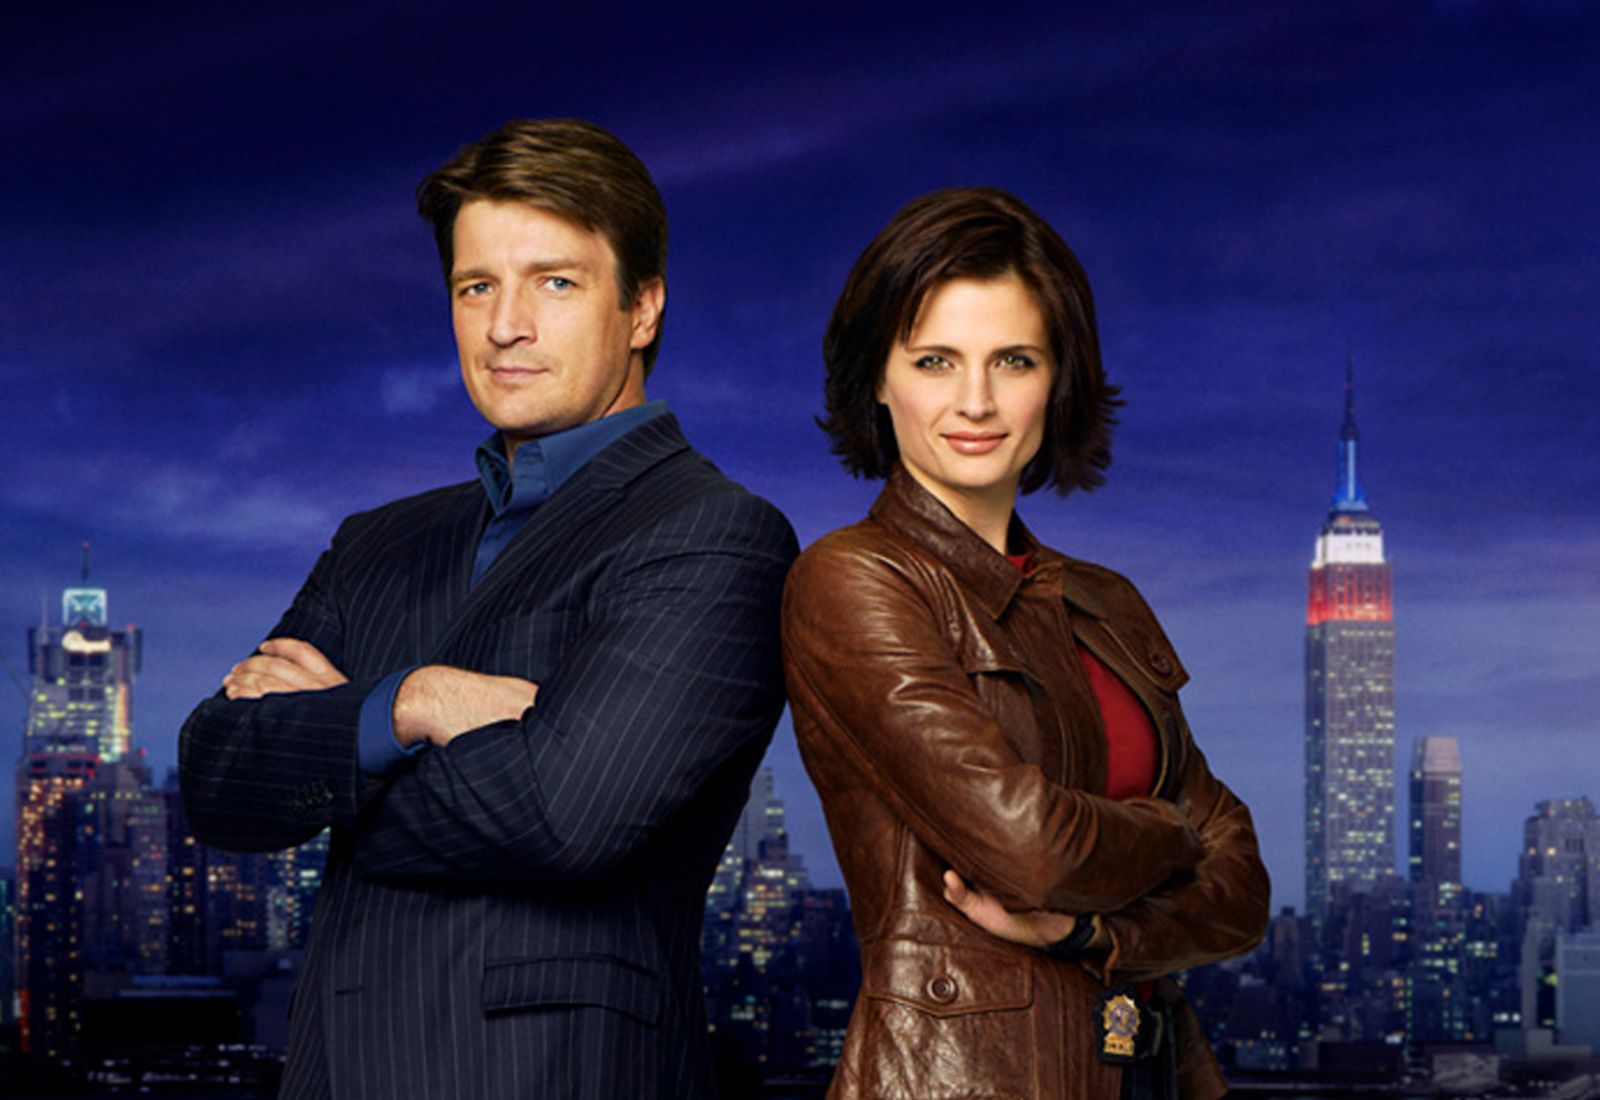 castle watch online free season 1